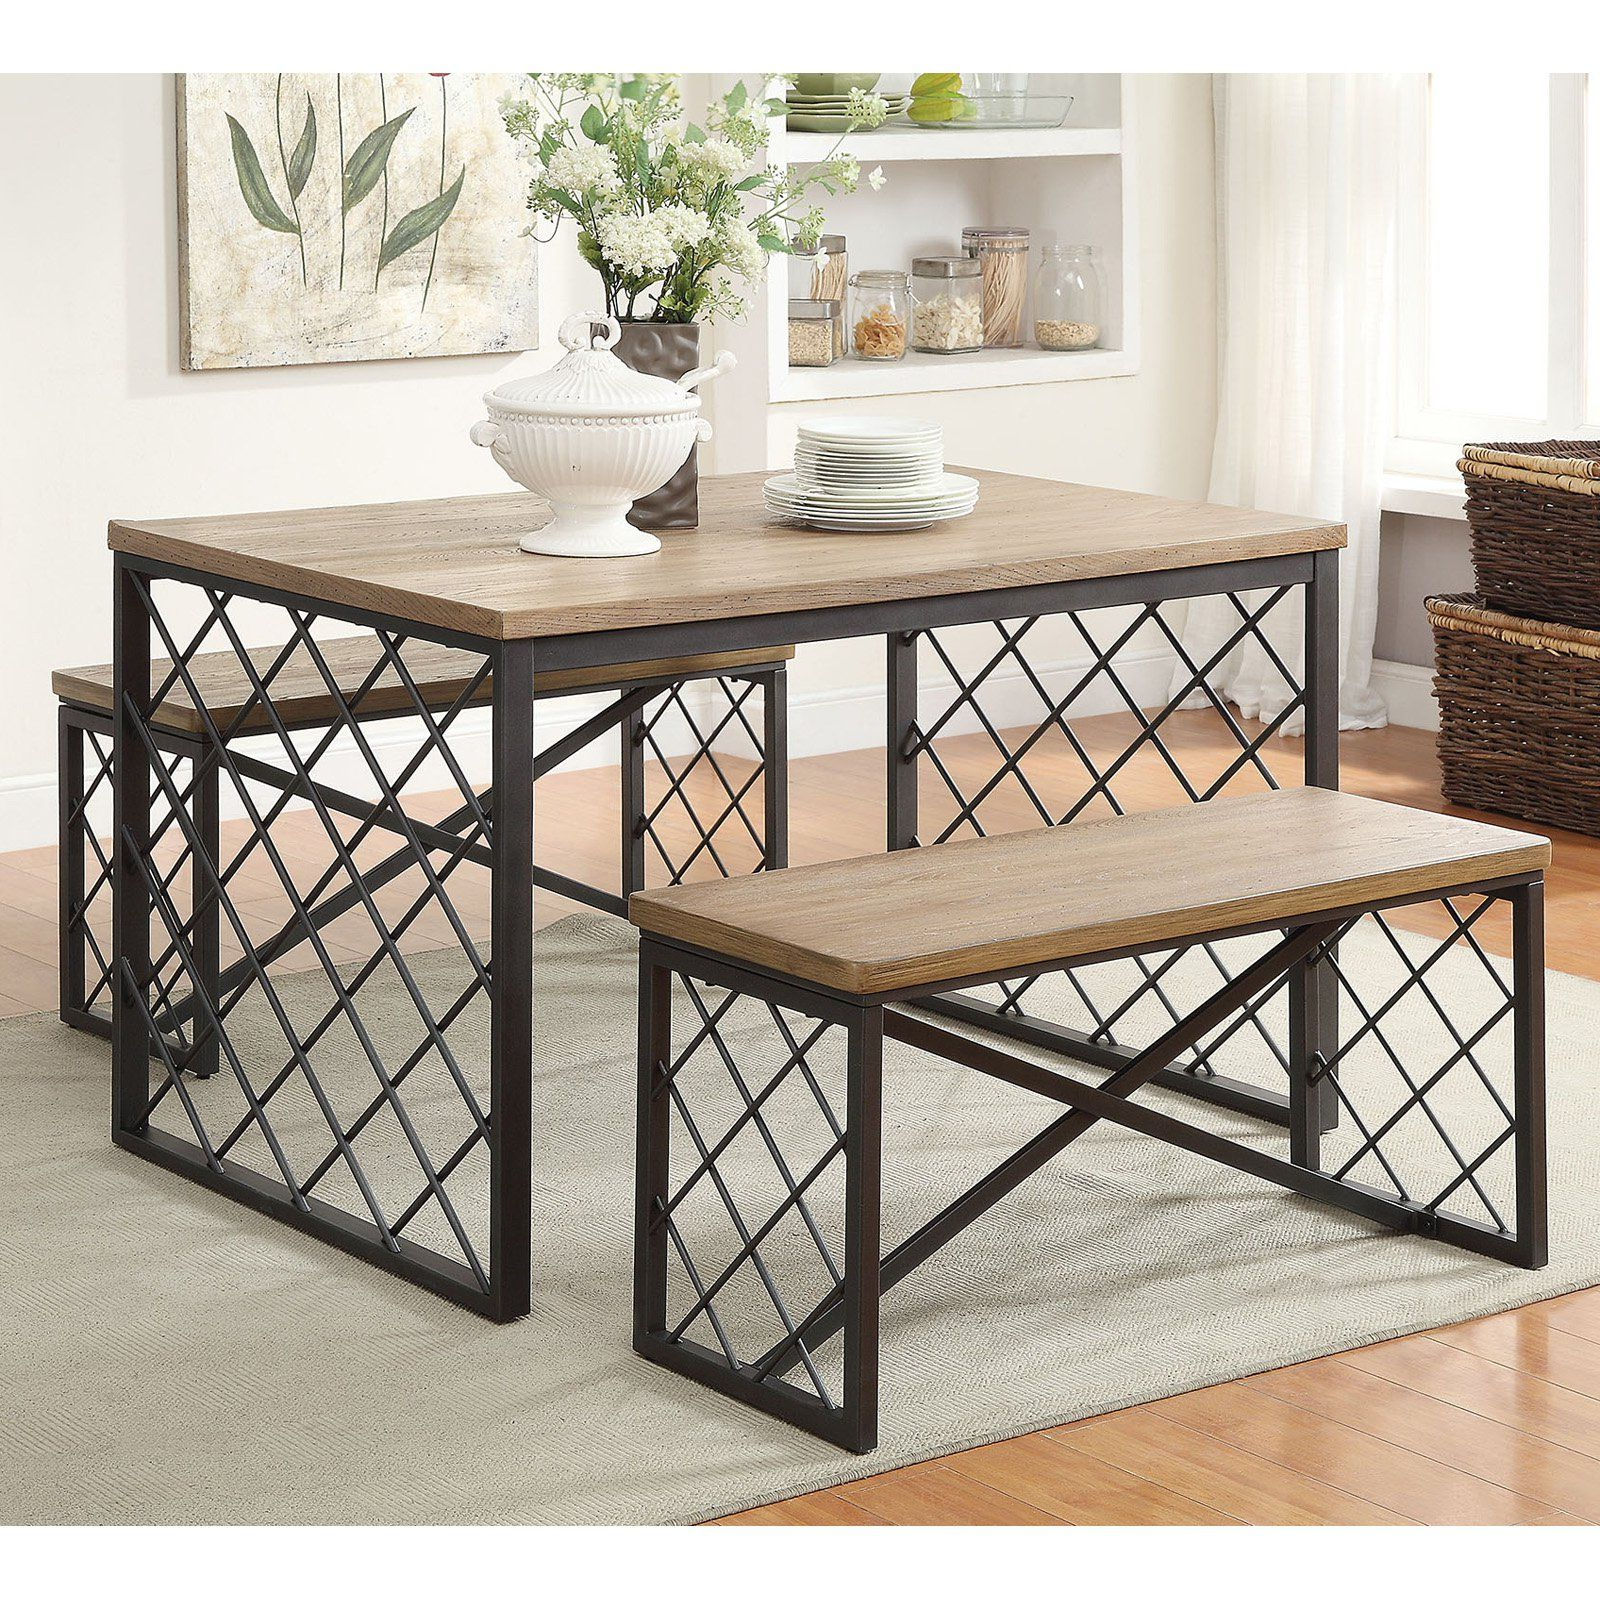 Widely Used Debby Small Space 3 Piece Dining Sets Intended For Acme Furniture Catalina 3 Piece Rectangular Dining Table Set (View 8 of 25)